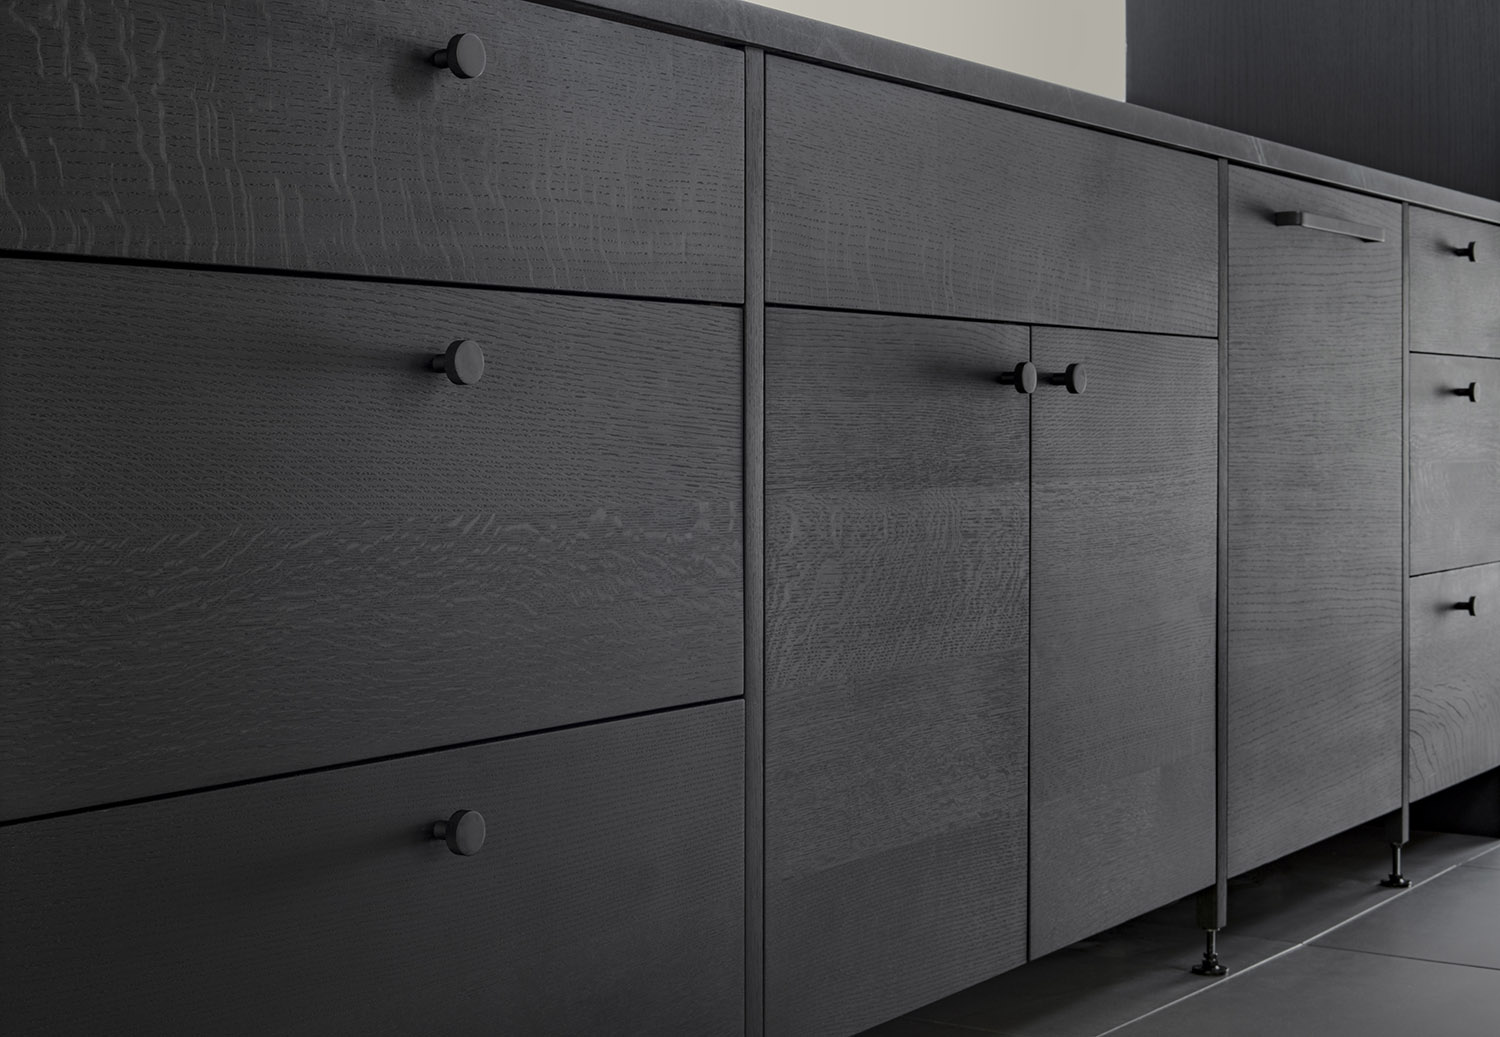 custom kitchen cabinetry in ebonized oak